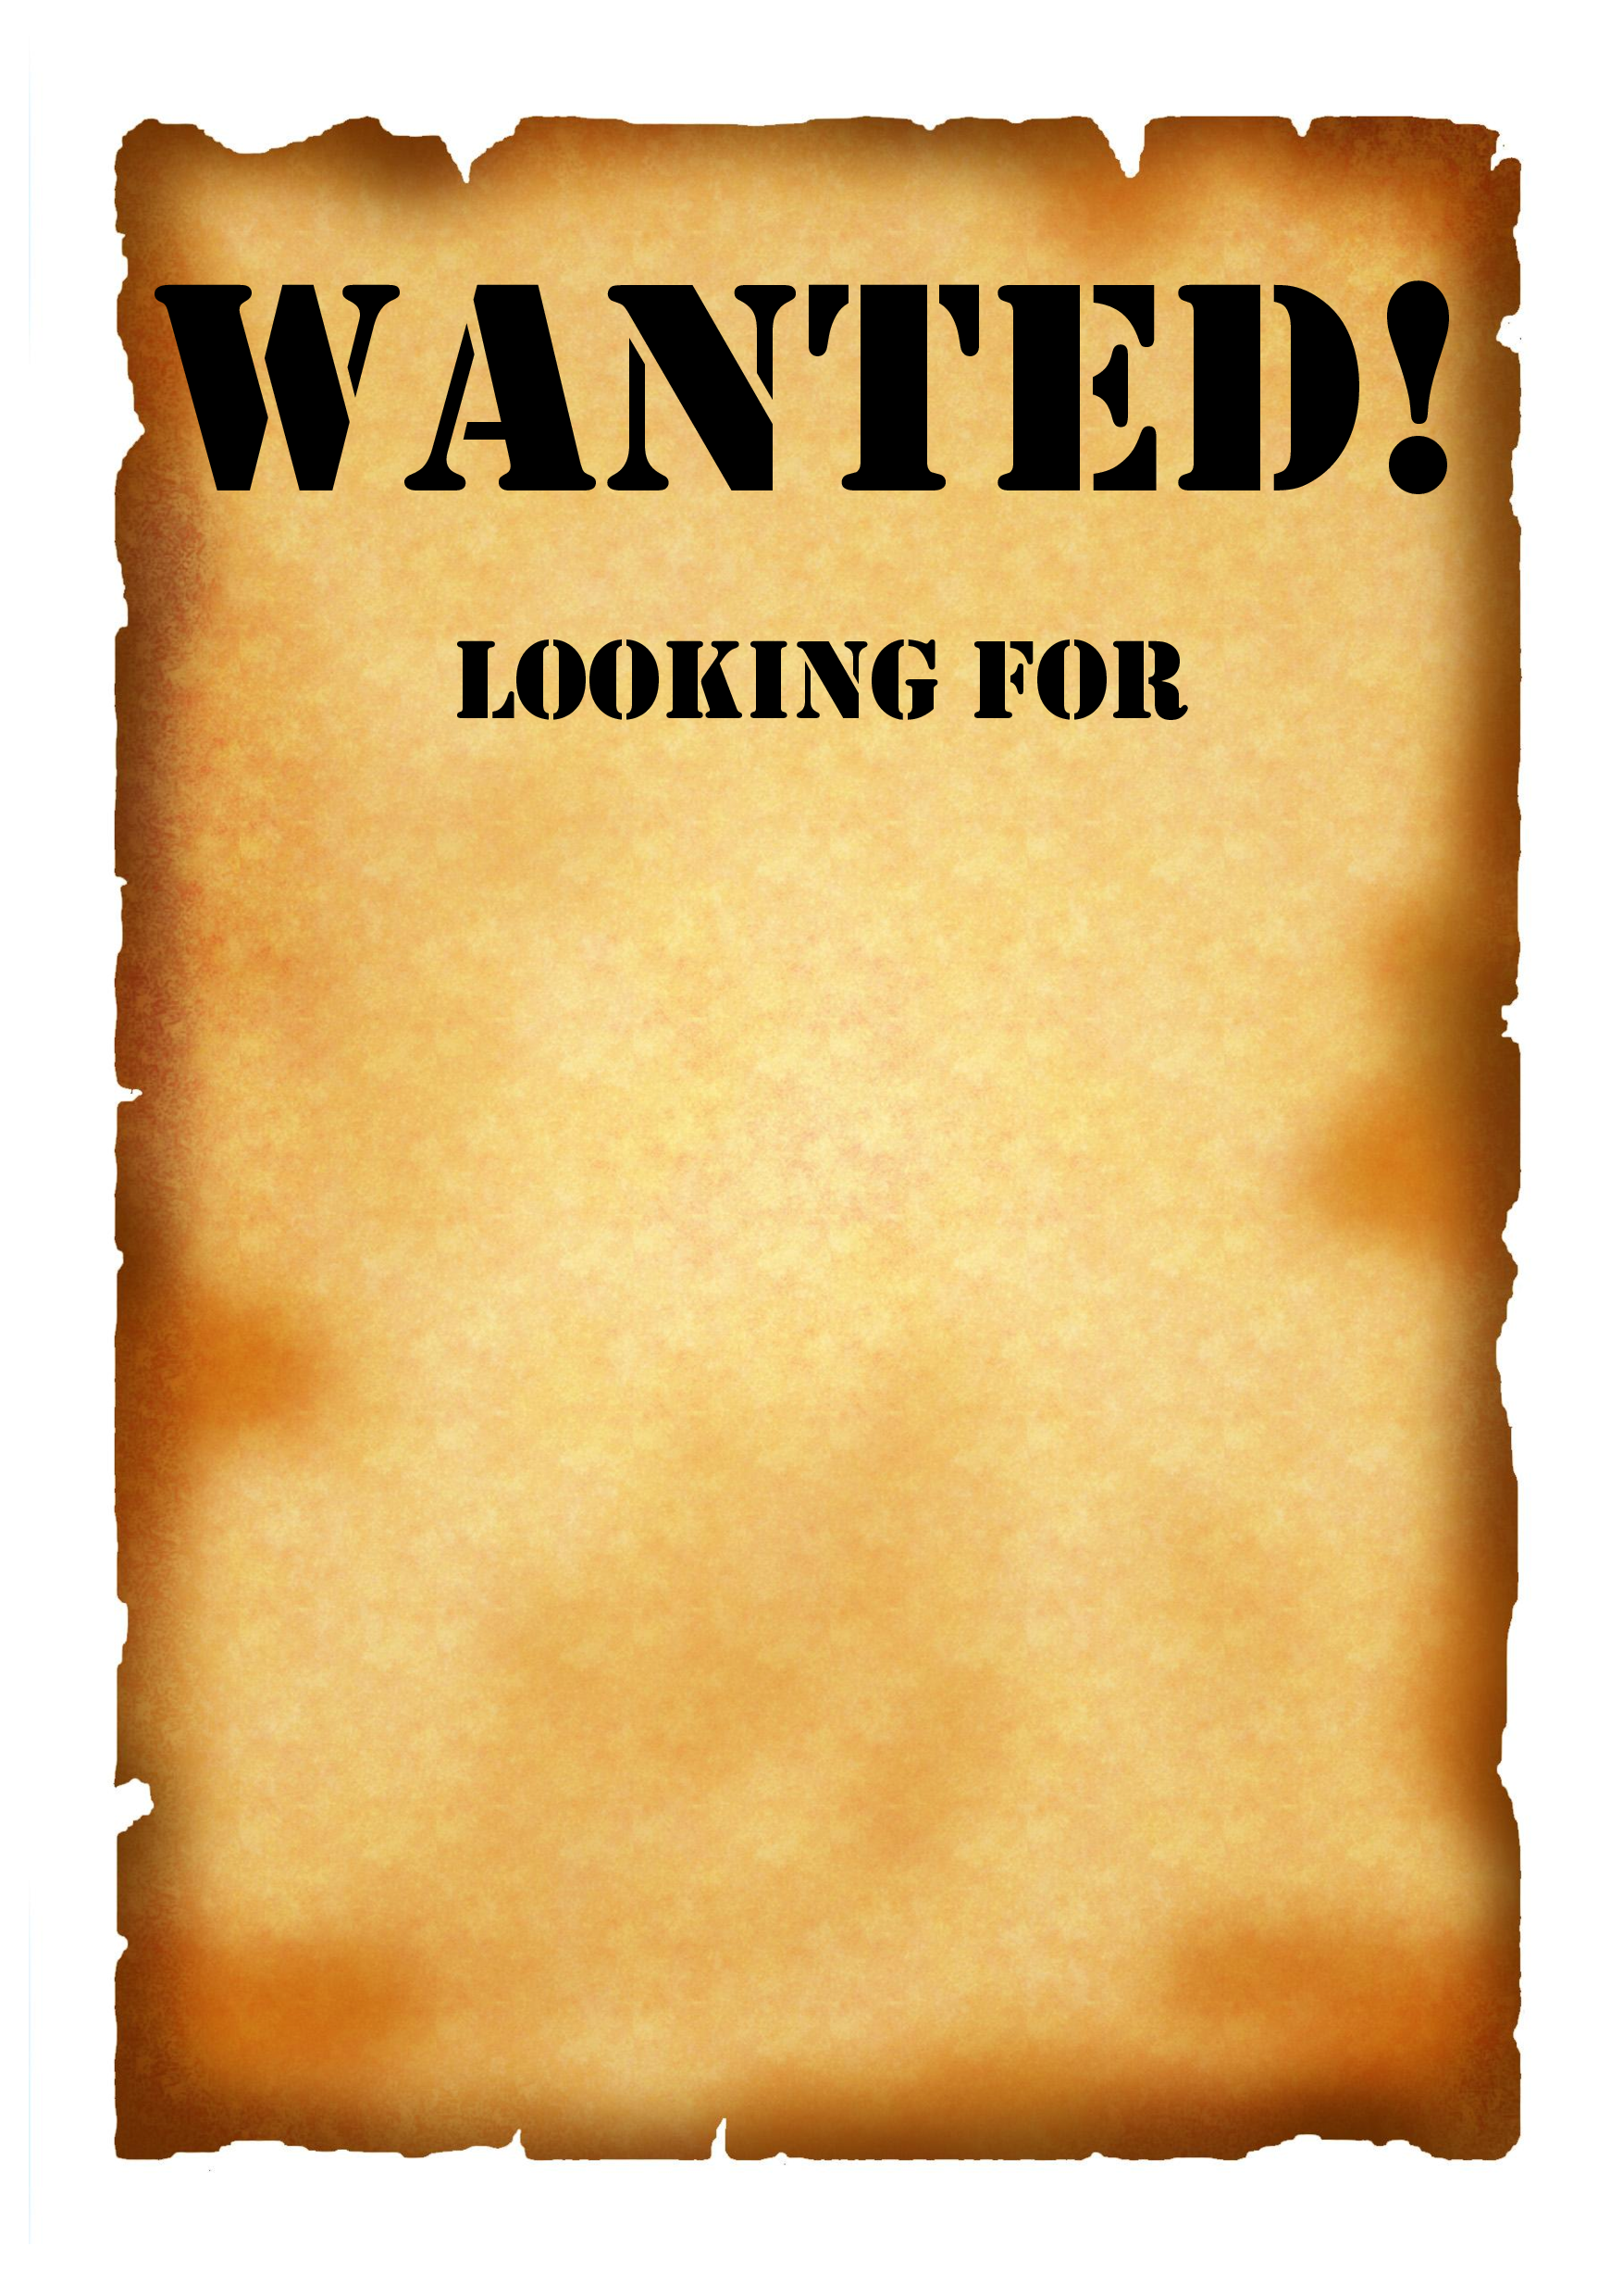 Wanted wallpaper wallpapersafari for Wanted dead or alive poster template free